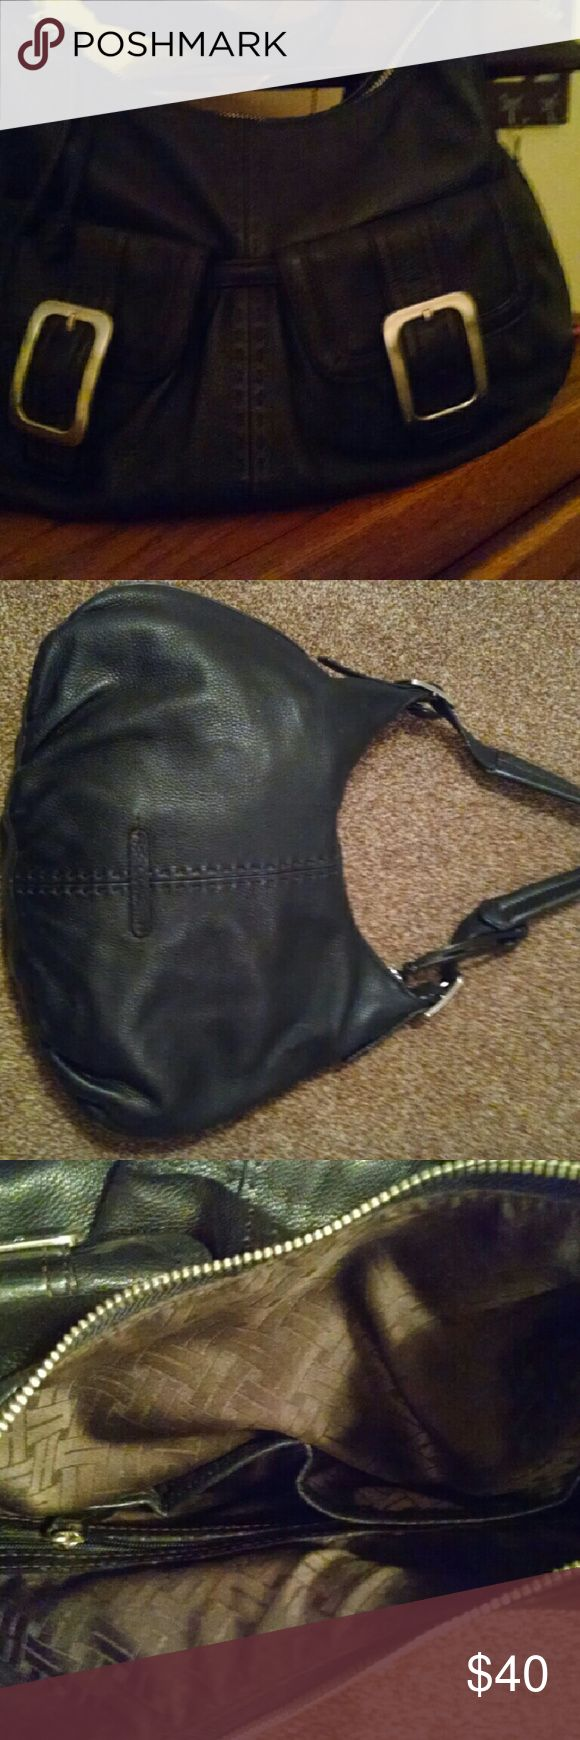 """Black leather buckle bag 2 front outer pockets, zip closure, lined, 2 inner pockets 1 w/zip closure 16""""x10"""", super soft, no blemishes Cole Haan Bags Hobos"""